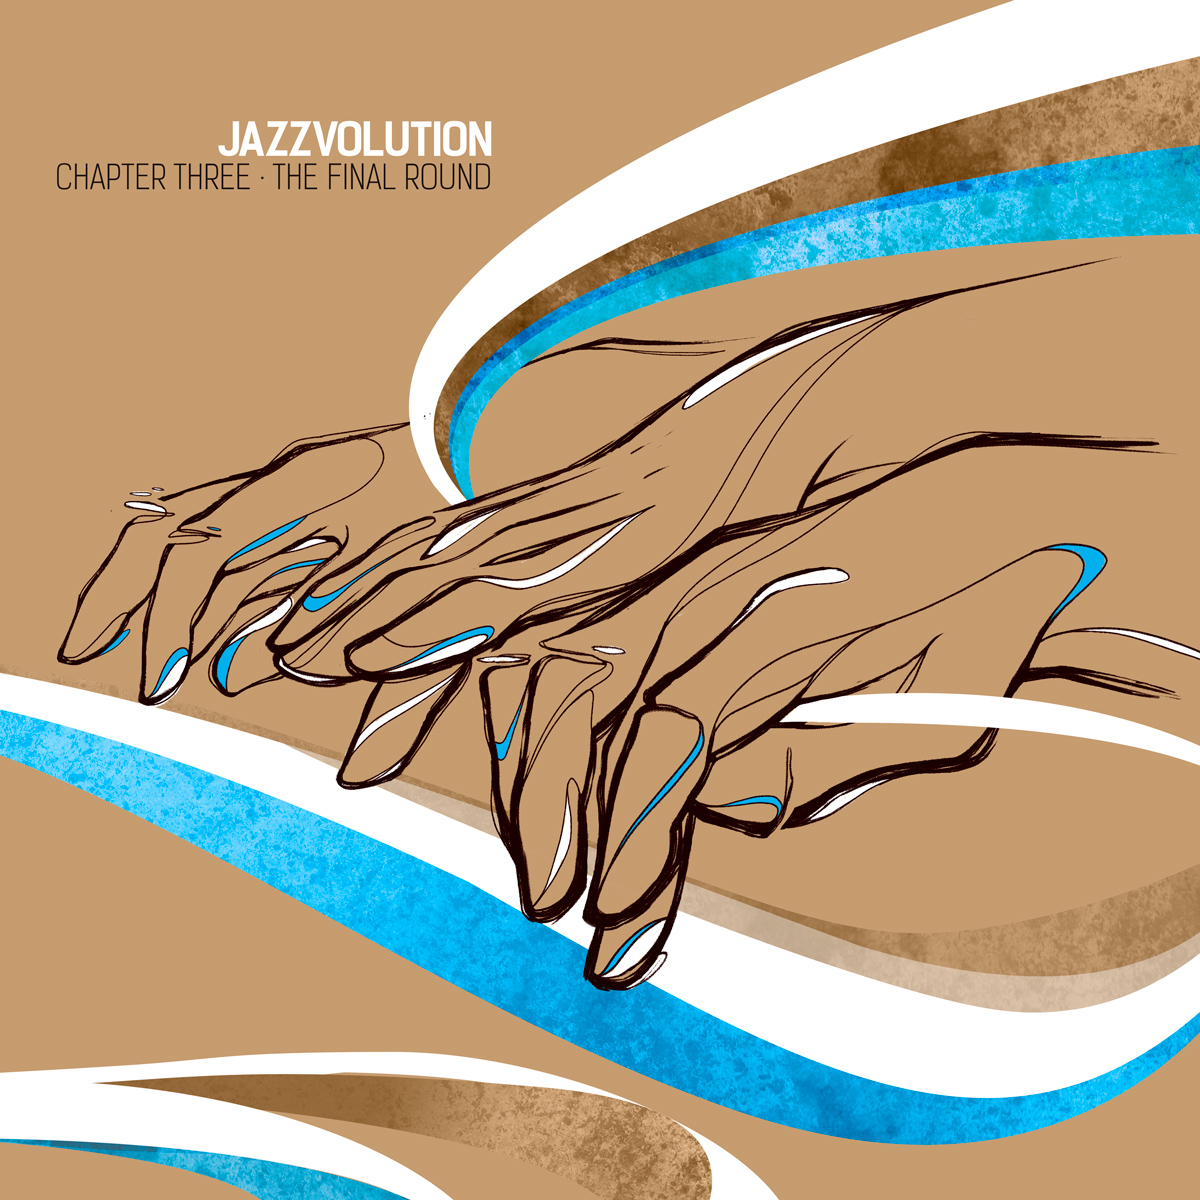 Jazzvolution Chapter Three: The Final Round (LP / Digital by The Find x HHV)